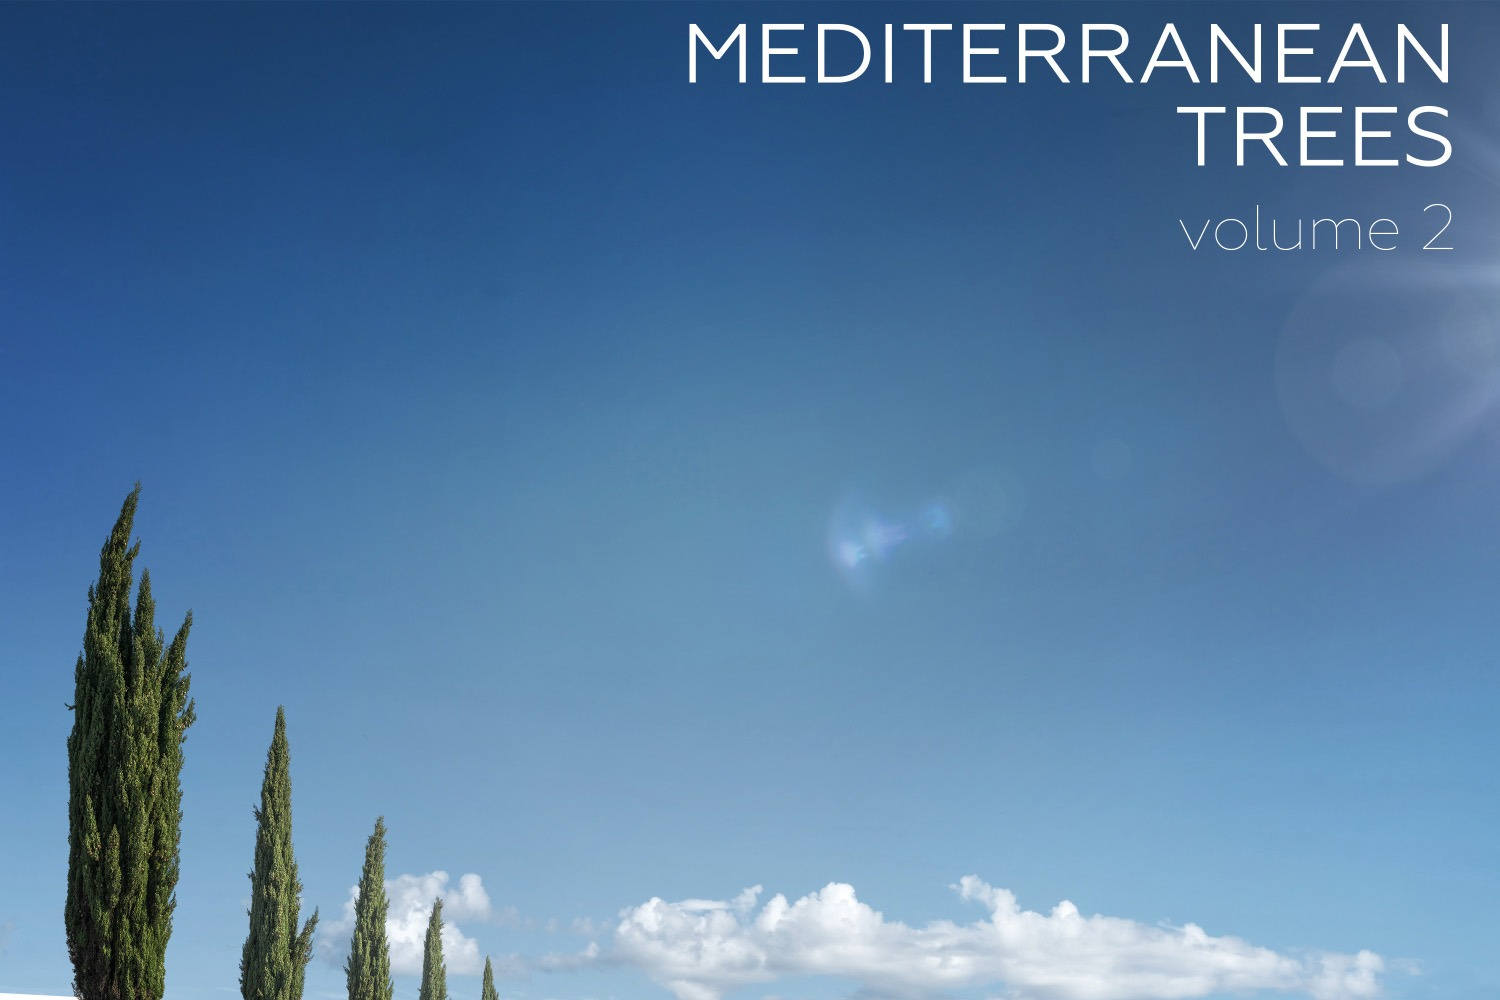 MEDITERRANEAN TREES Volume 02